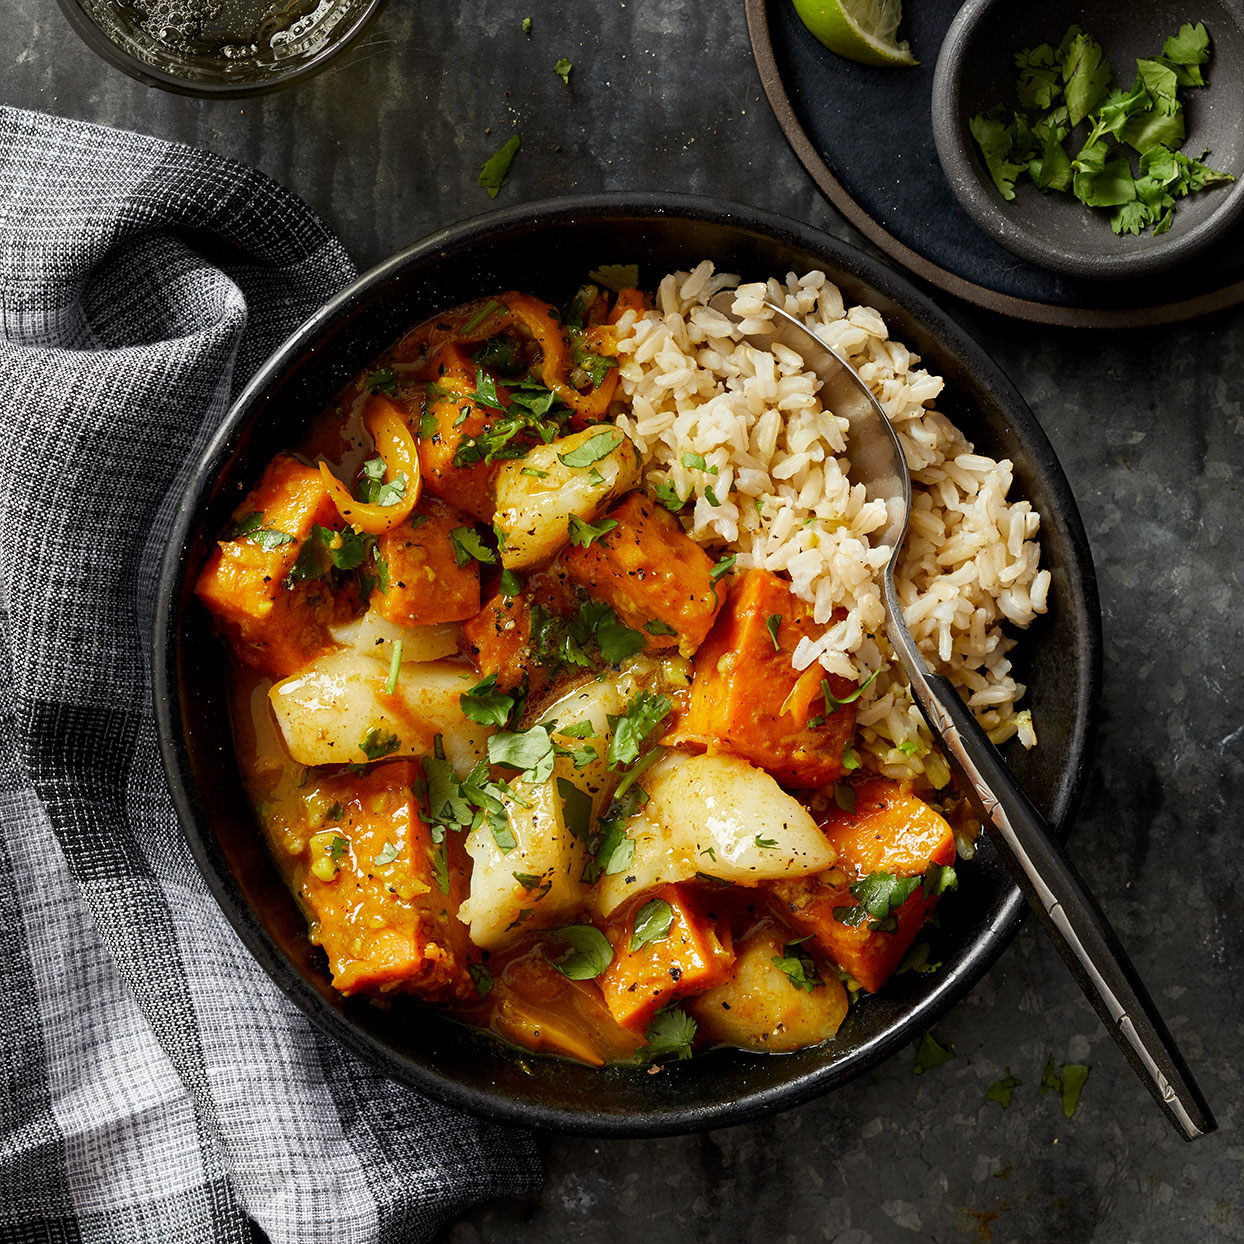 This hearty coconut curry is warm and comforting, thanks to tender sweet potatoes and a hint of spice. This easy curry recipe can be on the table in less than an hour.